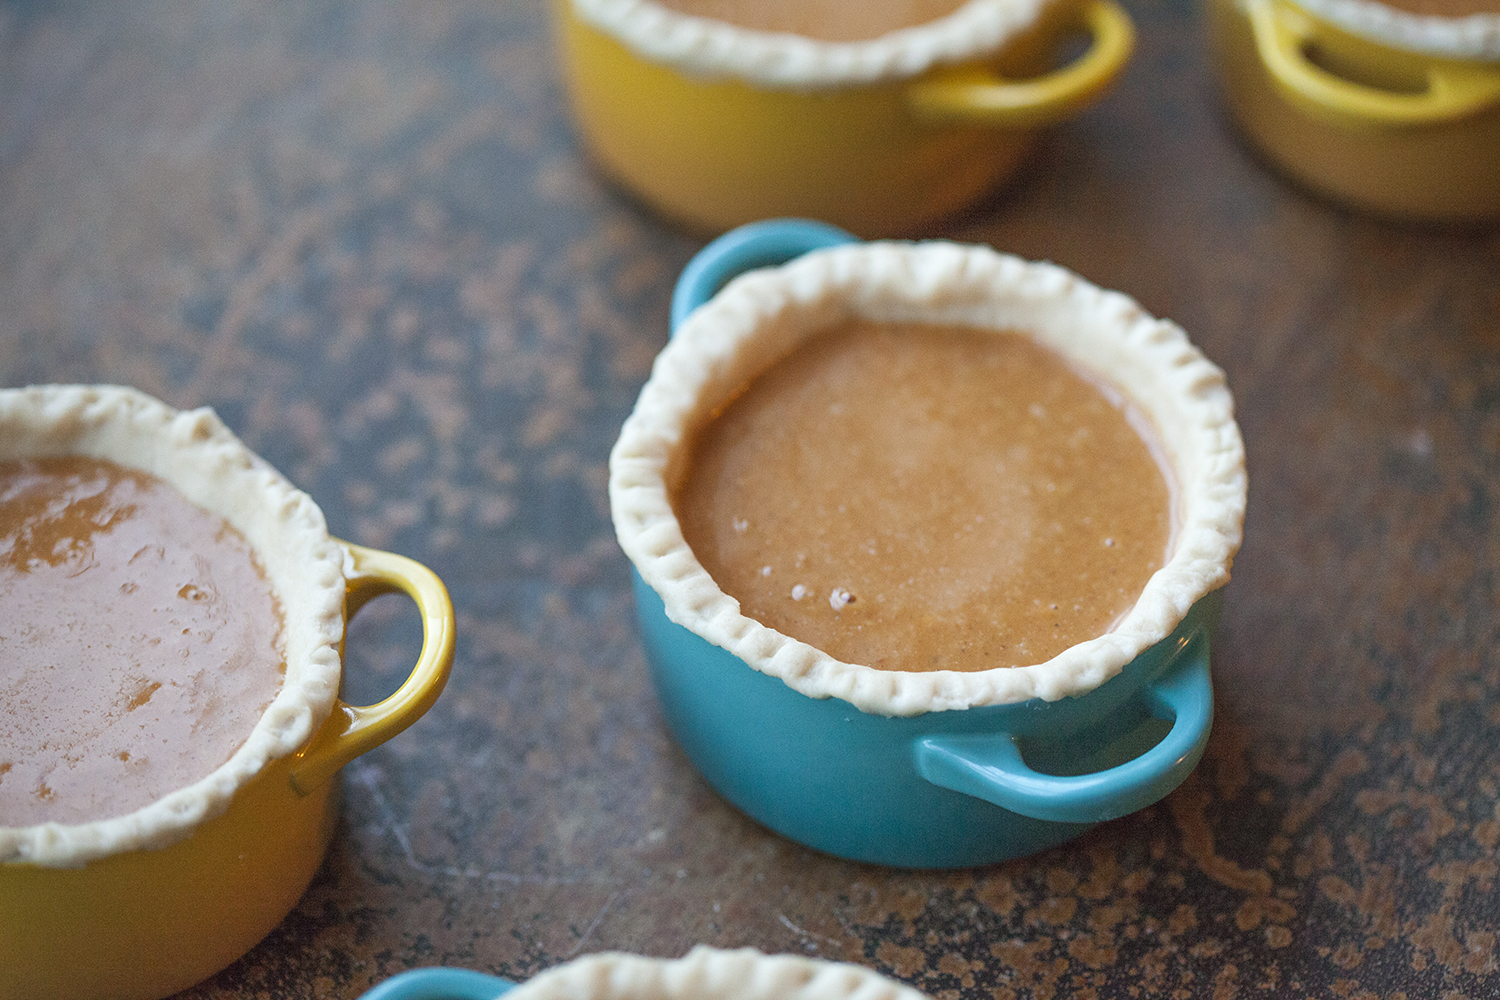 ve entered the Mini Pumpkin Pies in a linky over at TidyMom.net ...